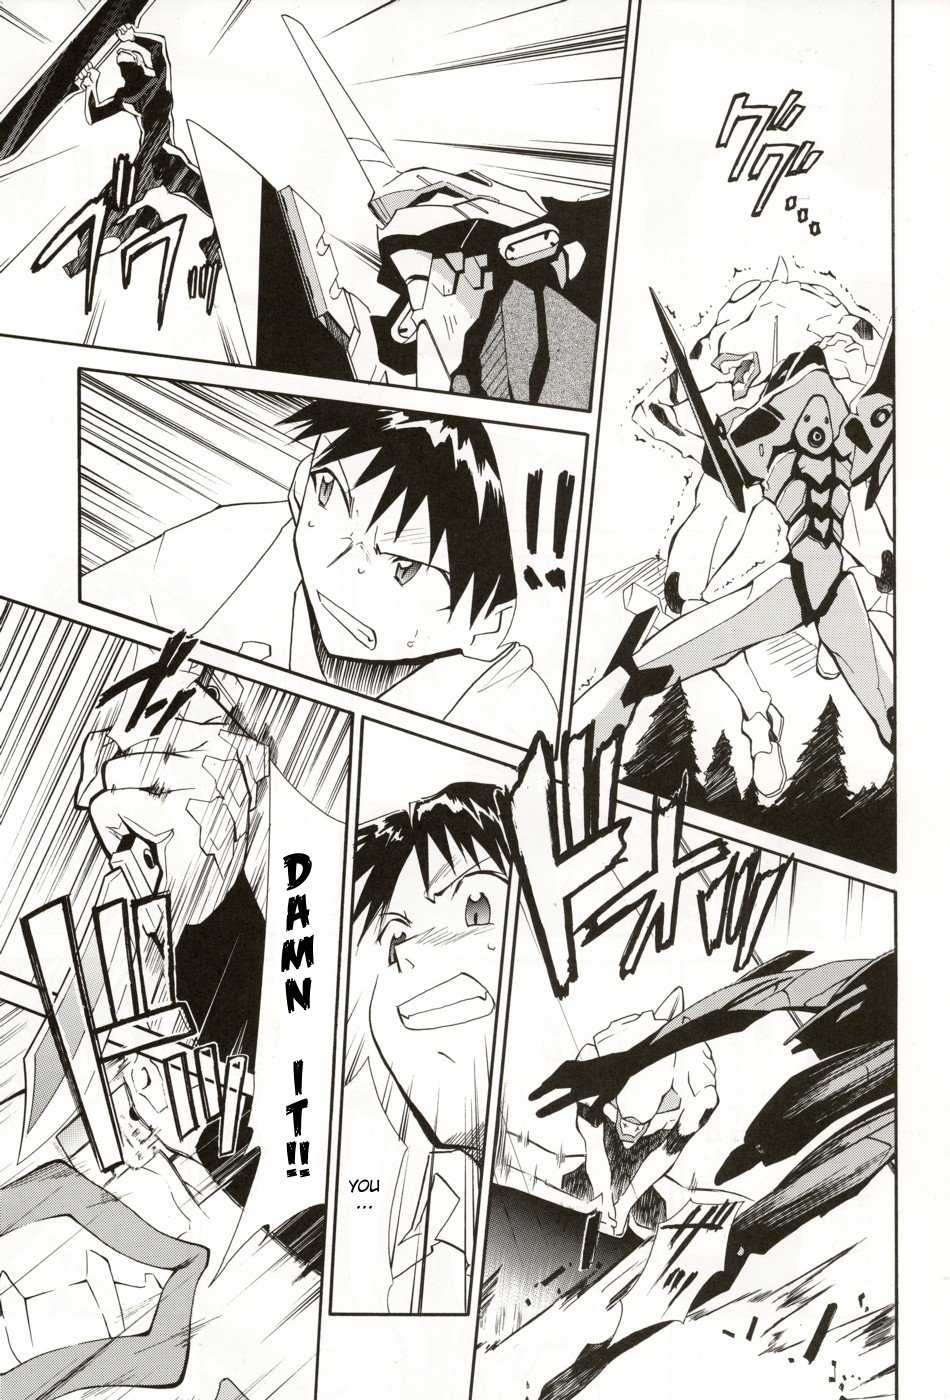 (C70) [Studio Kimigabuchi (Kimimaru)] RE-TAKE 4 (Neon Genesis Evangelion) [English]